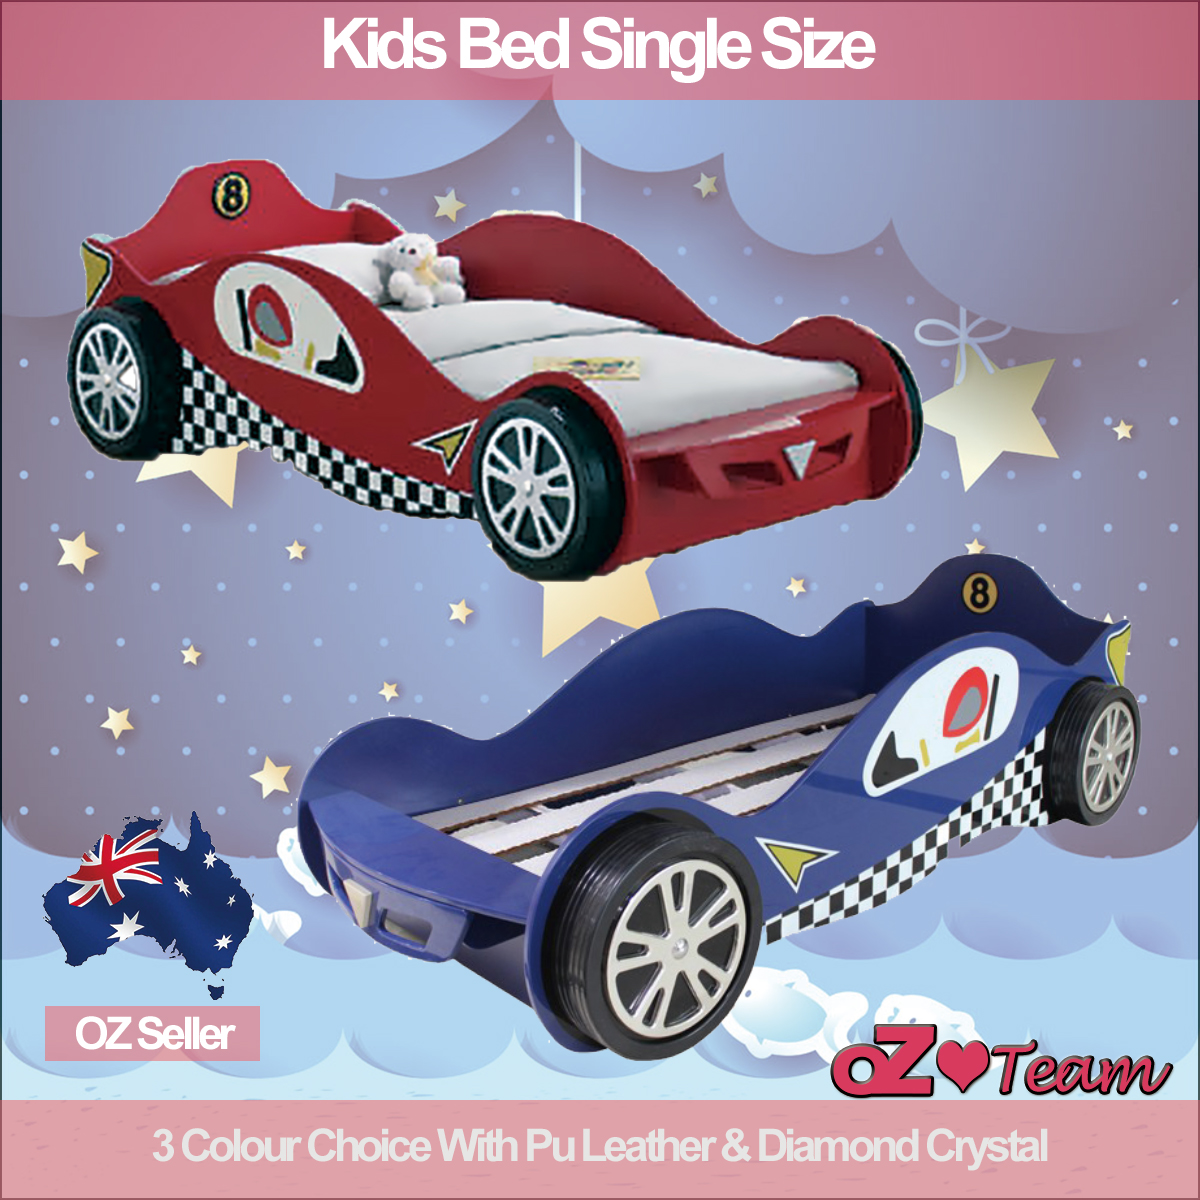 kids racing car bed single size children bedroom furniture kids race bedding ebay